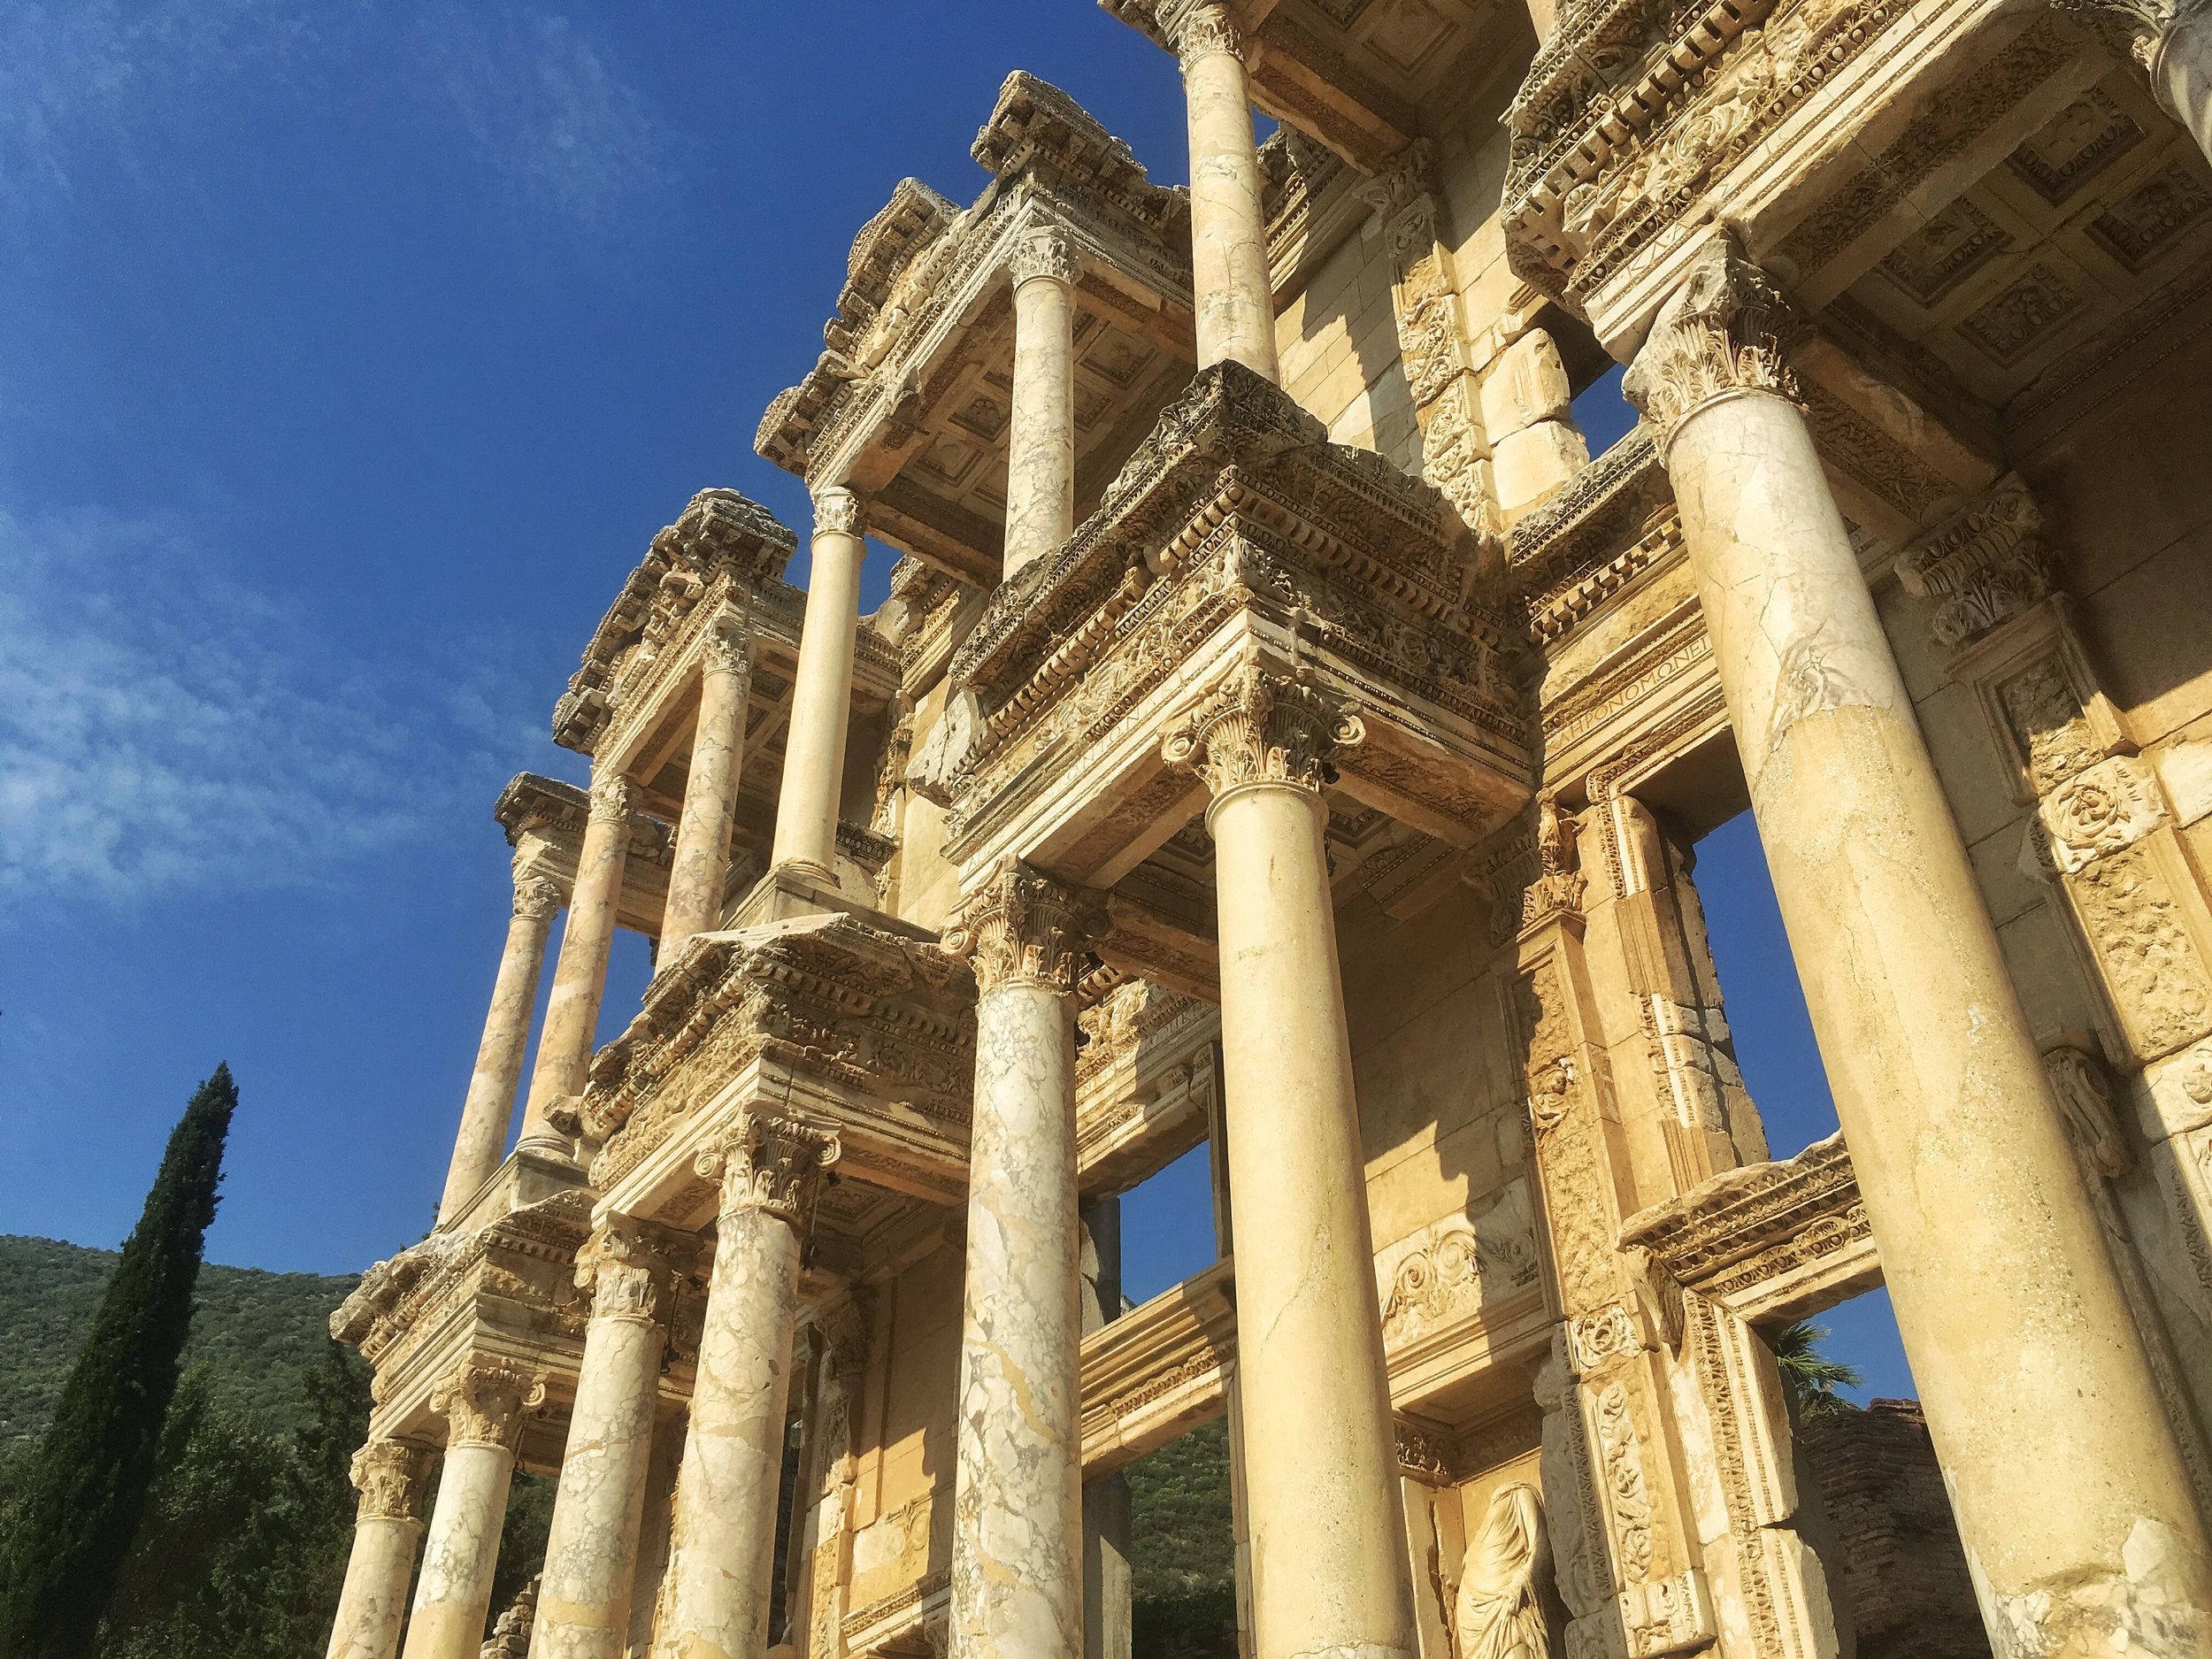 The facade of the Library of Celsus at Ephesus, the ornate sculpture and Corinthian columns marking the stylistic high water mark of the Roman Empire